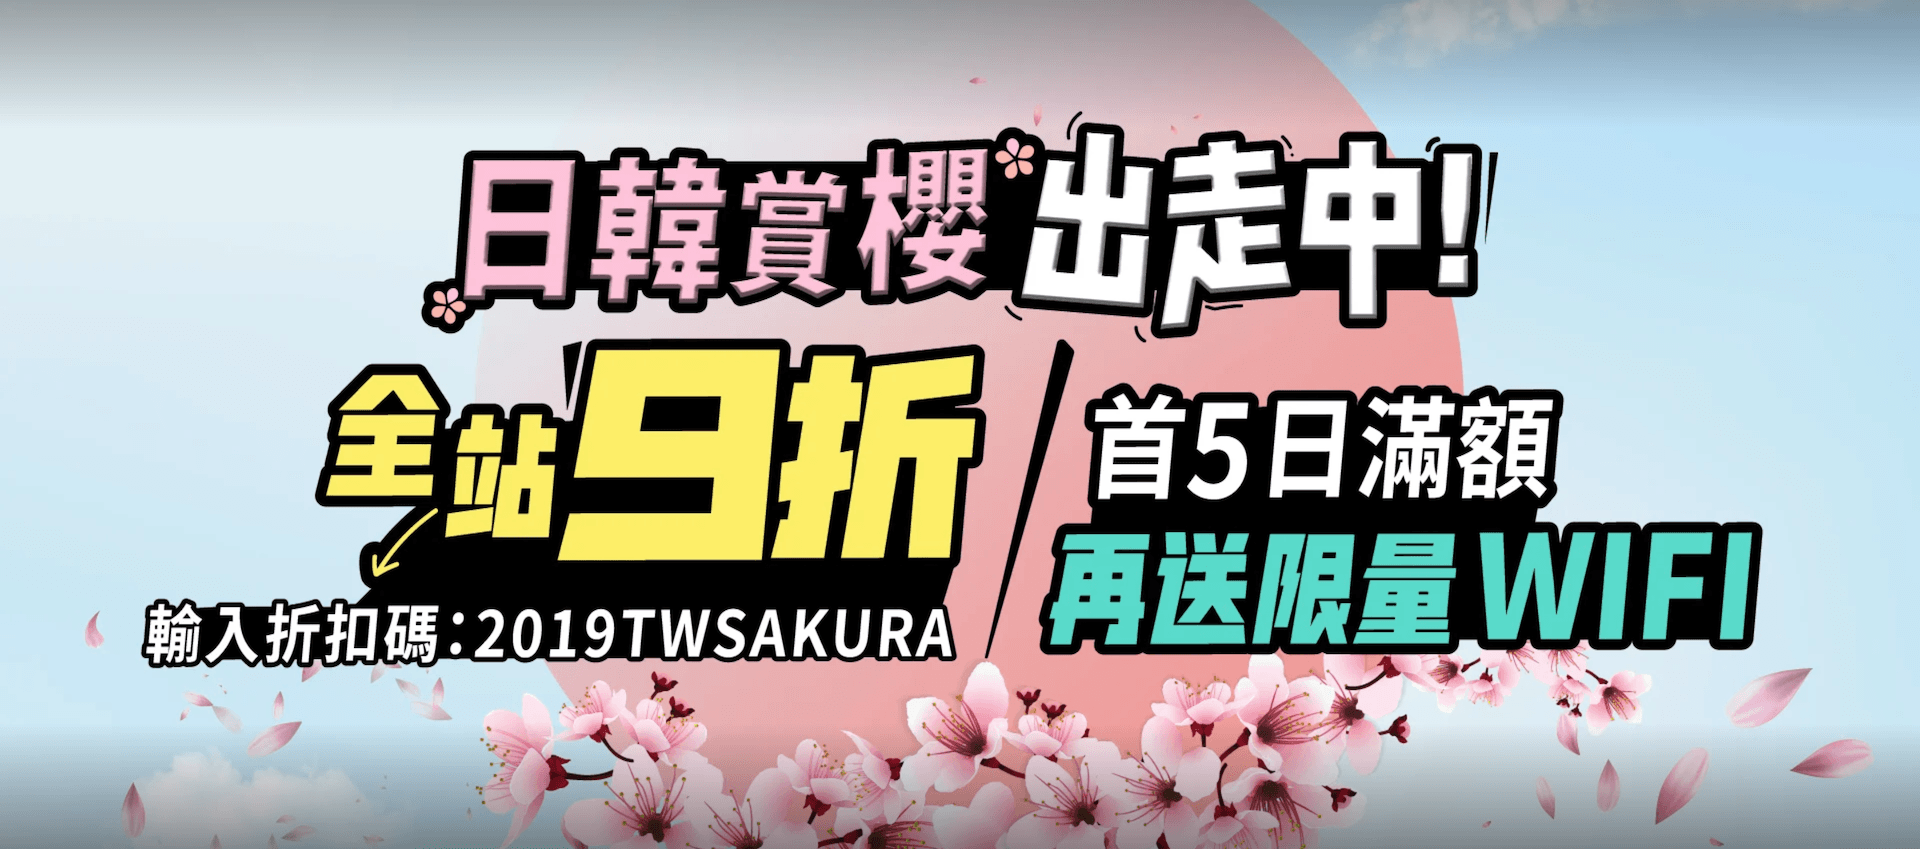 Klook sakura Japan Korea Promotion 2019